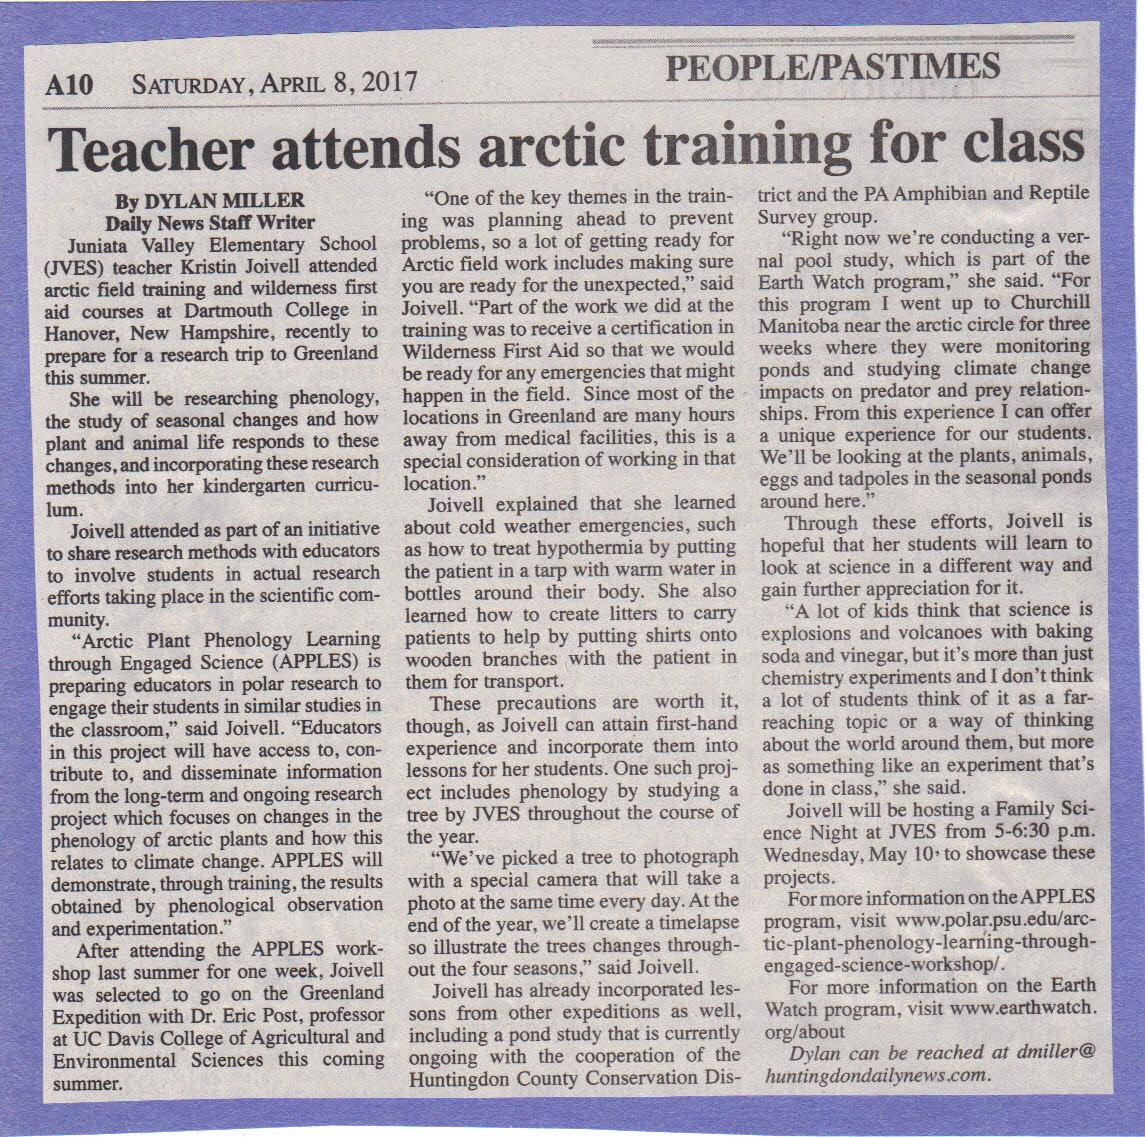 Daily News for April 8